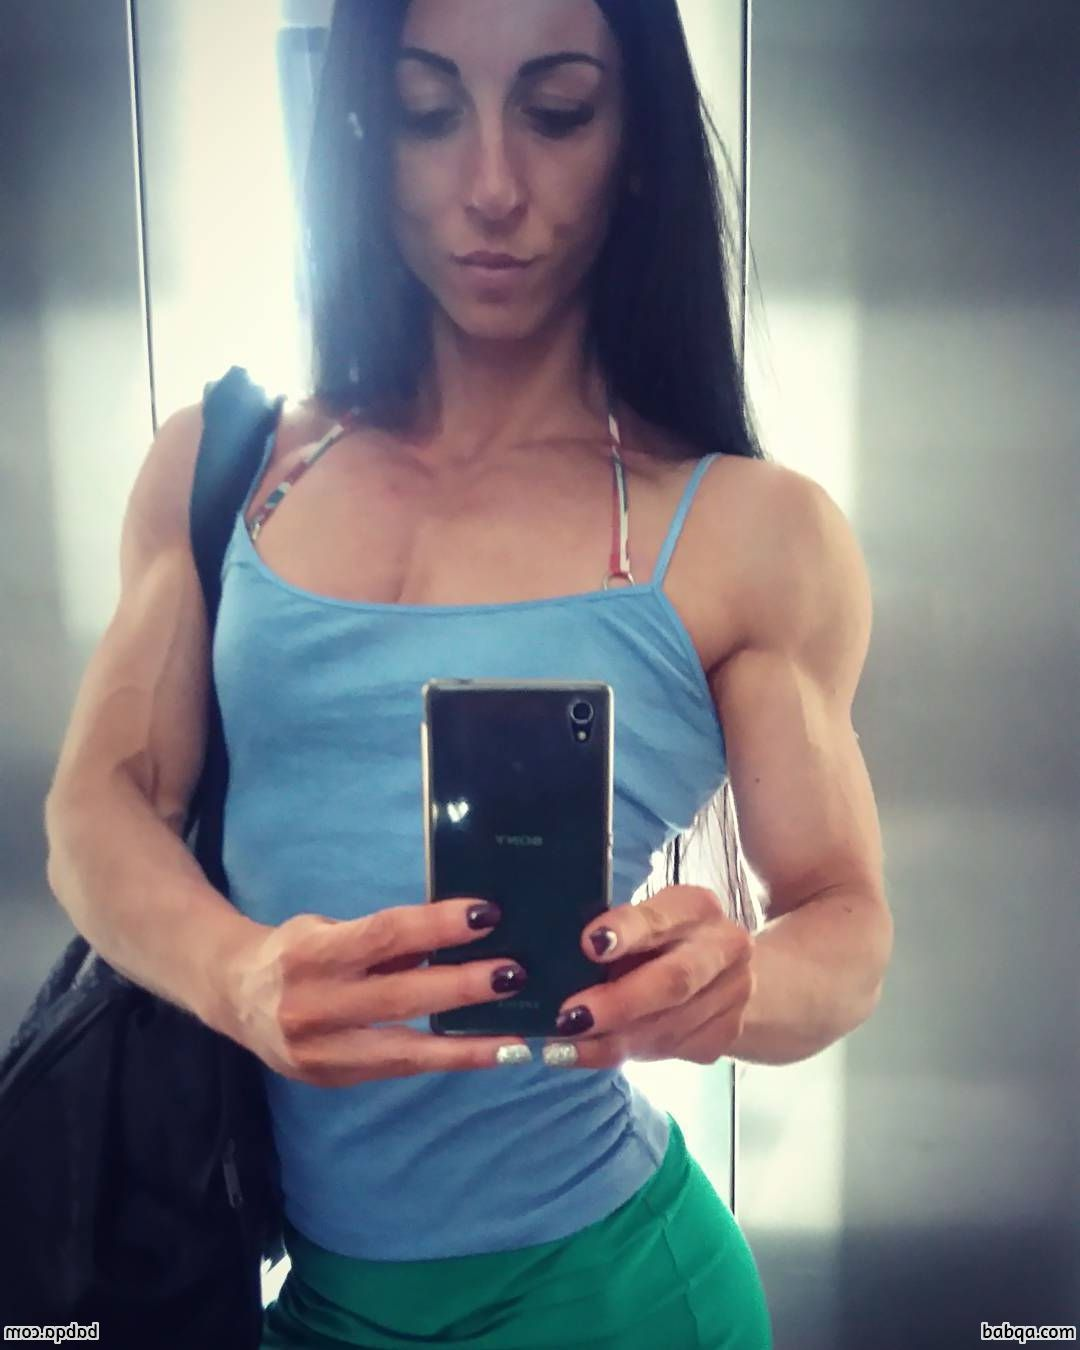 awesome female bodybuilder with muscle body and toned biceps photo from instagram